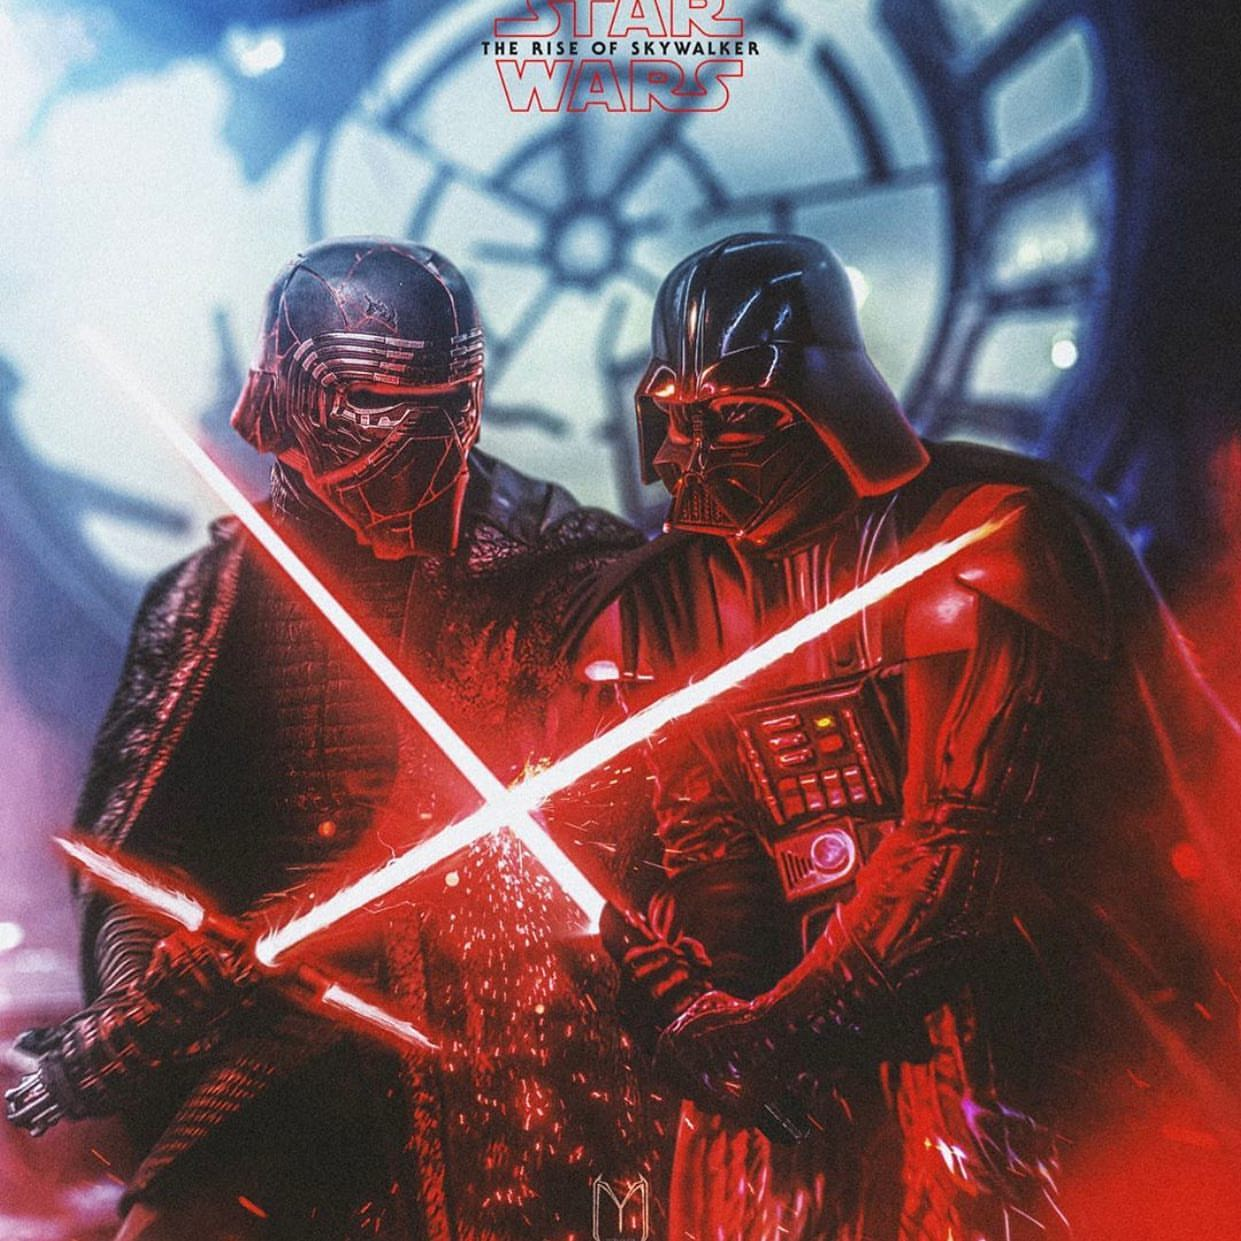 Would have been cool to see Vader completely wreck Kylo in a very heated duel. I think it would have done a lot for Kylo...